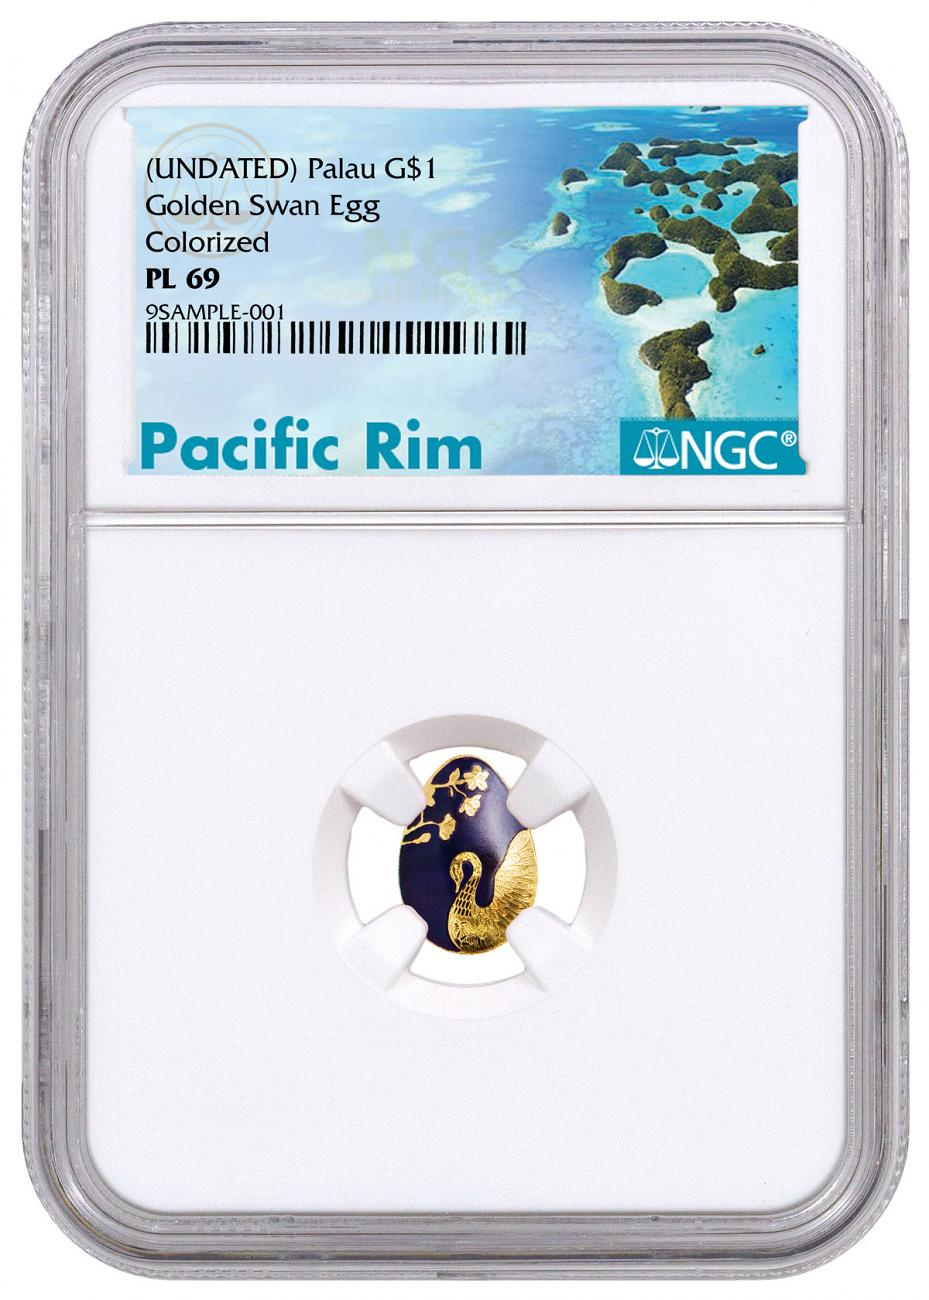 (2018) Palau Golden Swan Egg 1/2 g Gold Colorized Prooflike $1 Coin NGC PL69 Exclusive Pacific Rim Label